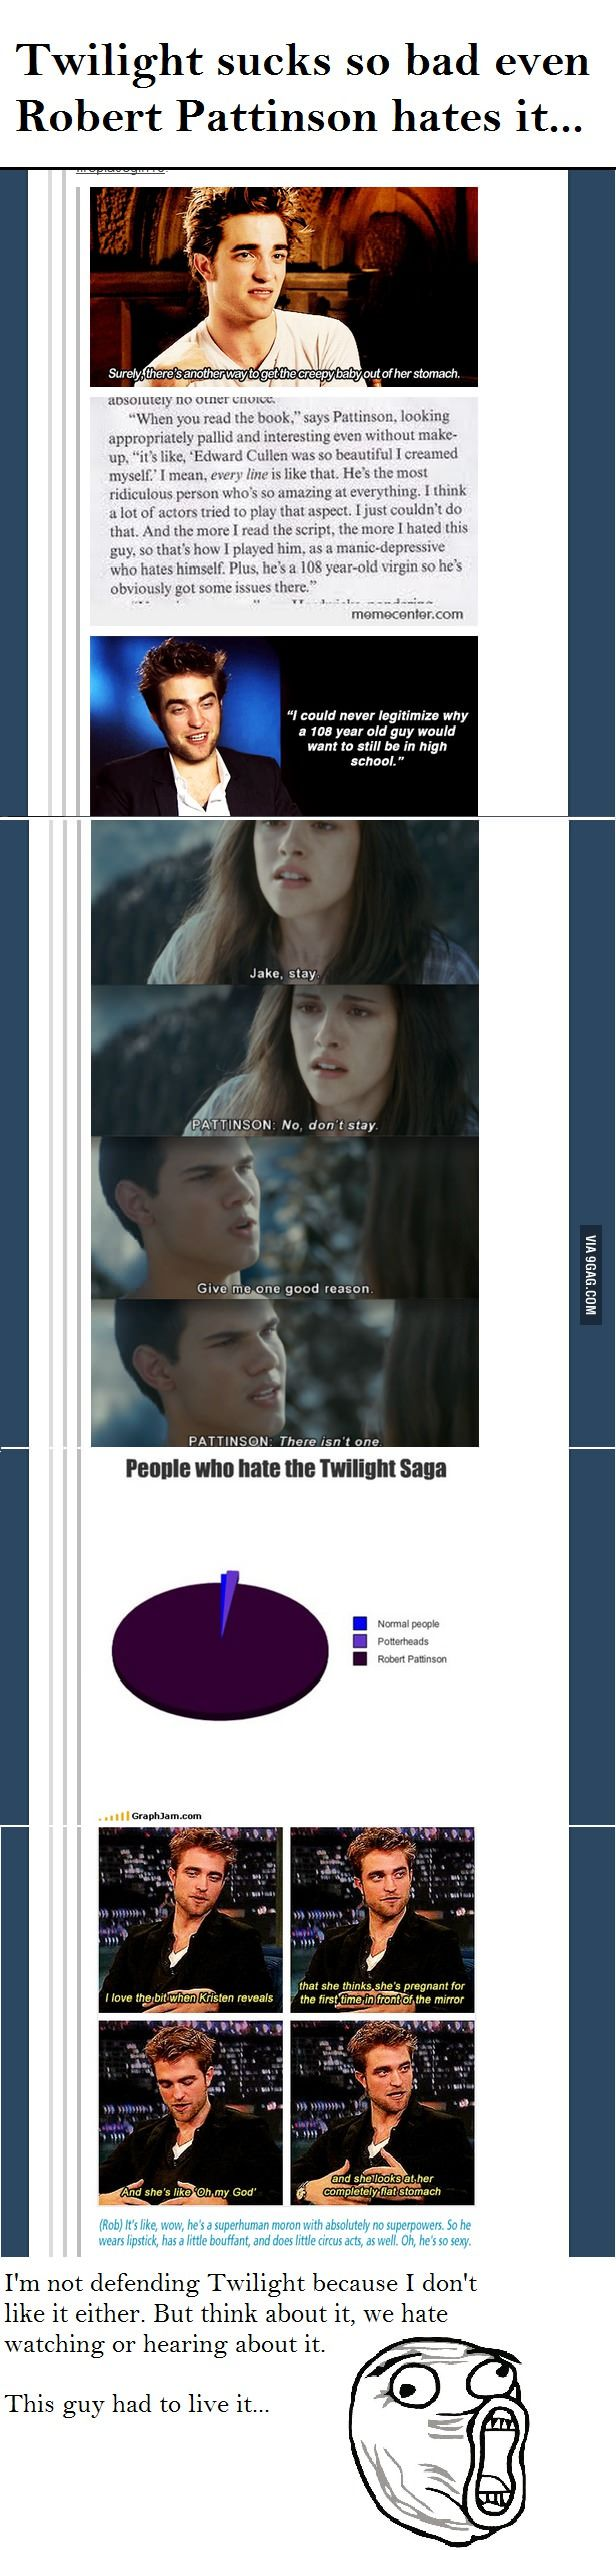 Even Robert Pattinson hates Twilight